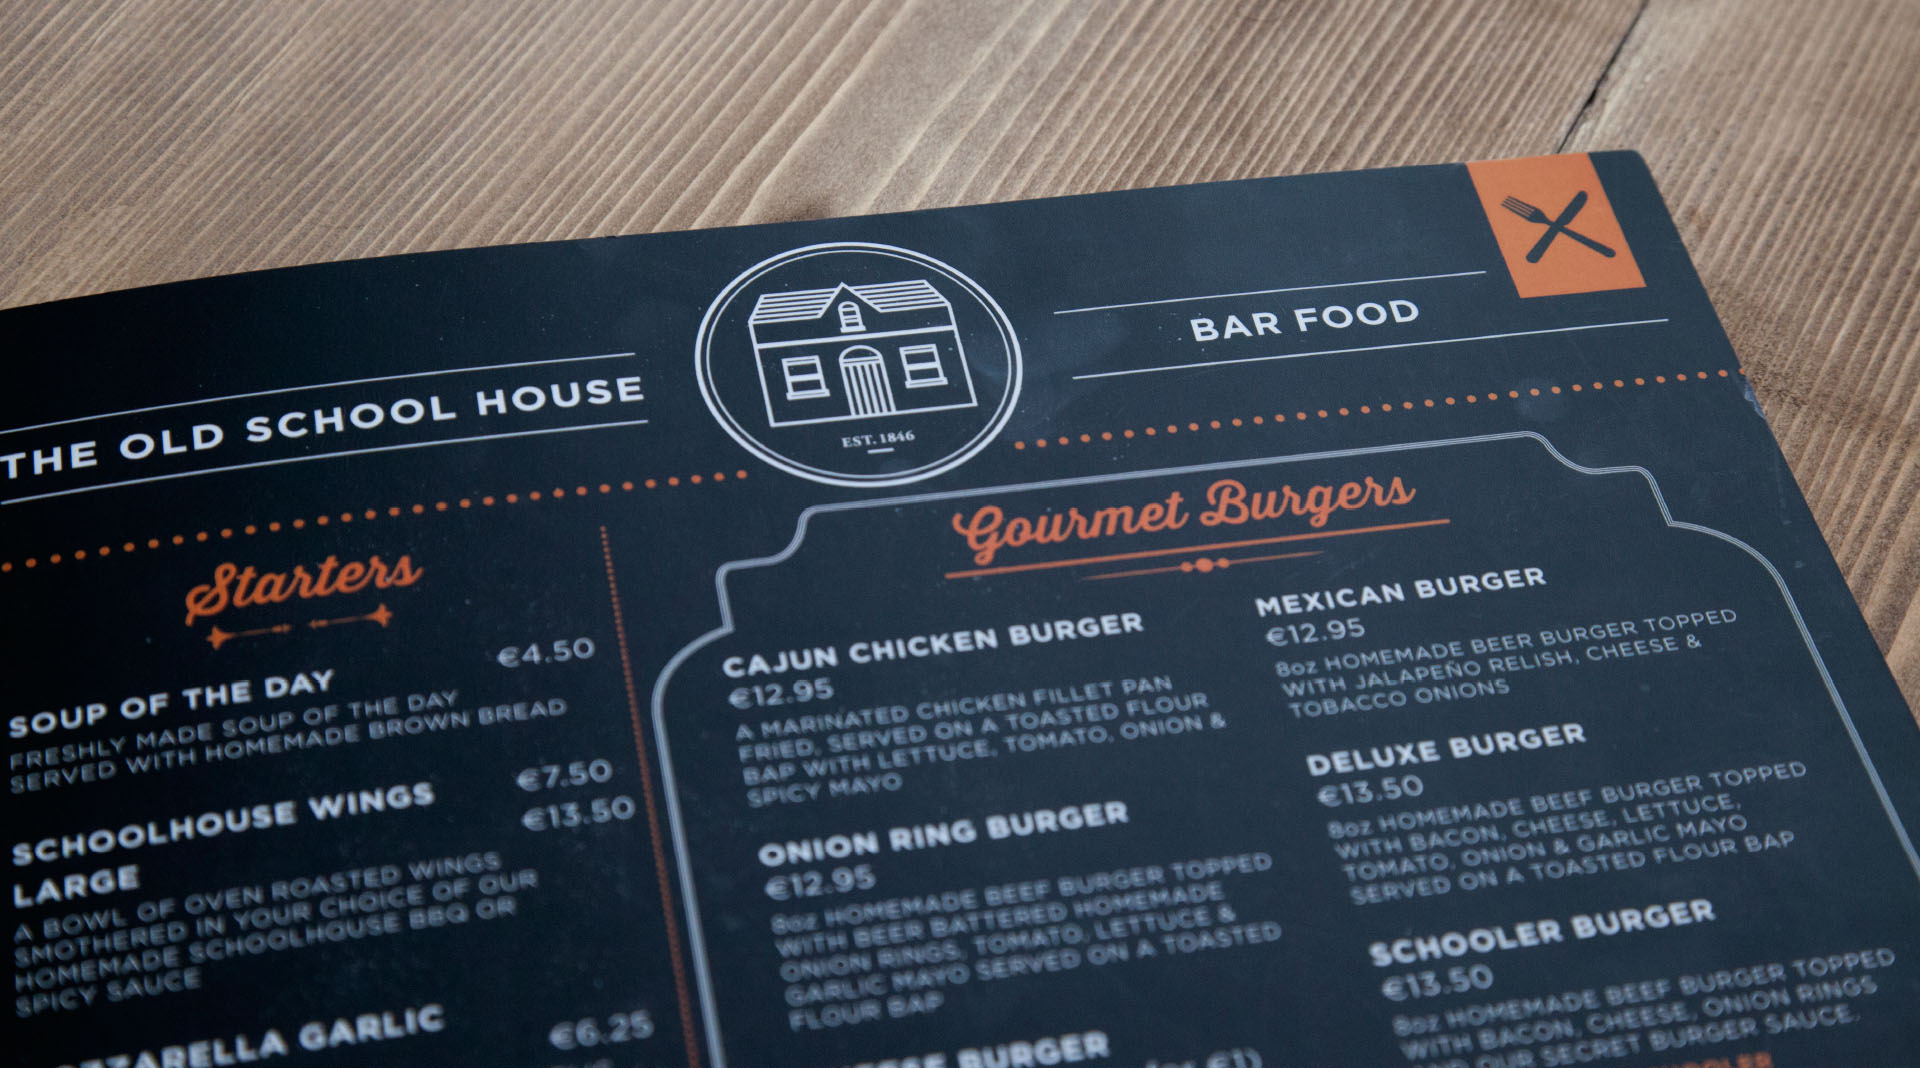 The Old Schoolhouse Menu Close Up